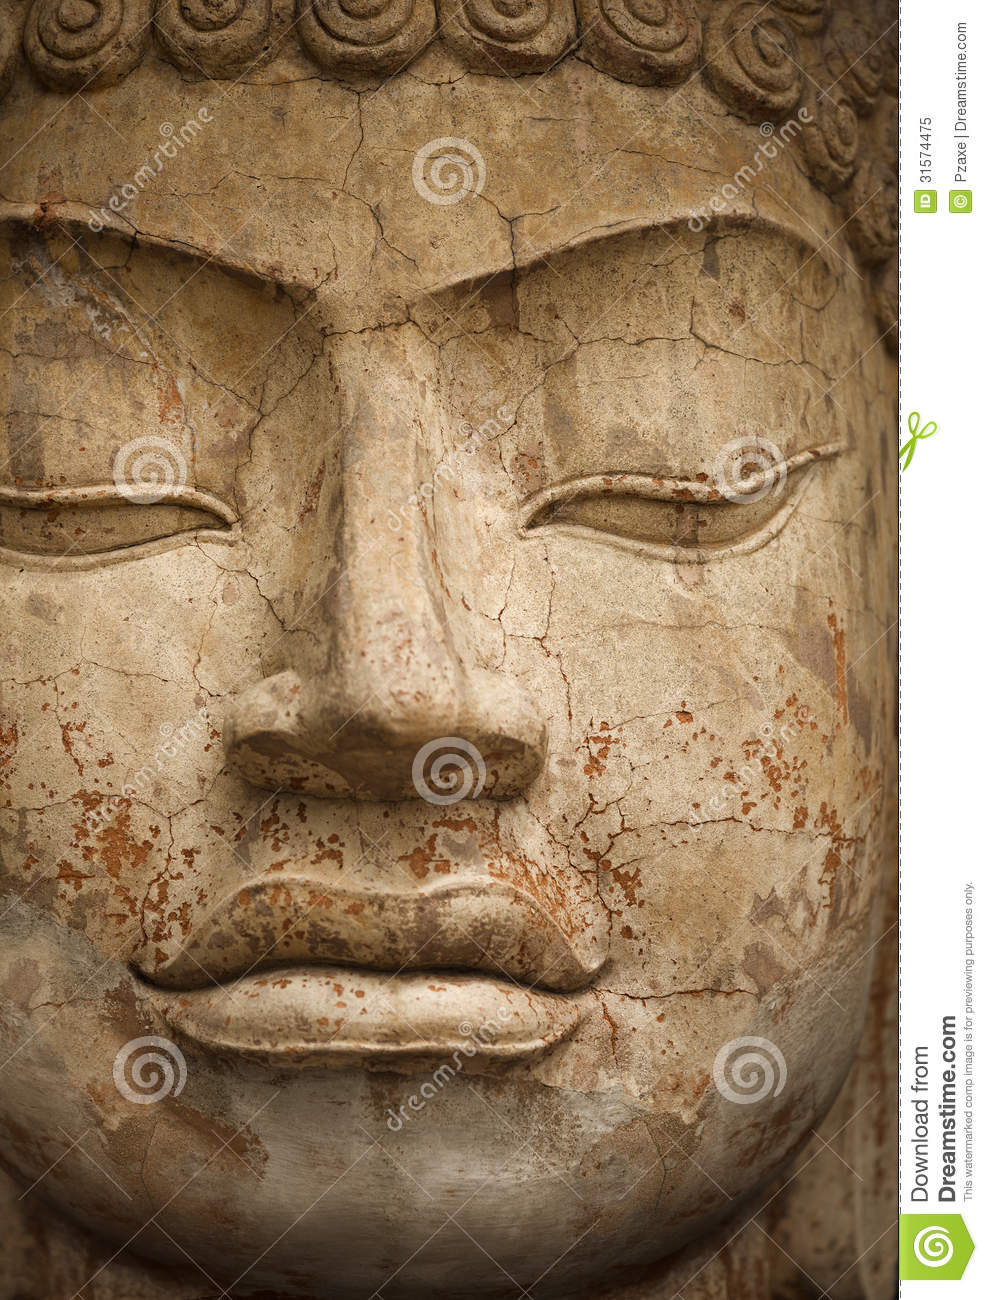 face of stone buddha statue royalty free stock photo image 31574475. Black Bedroom Furniture Sets. Home Design Ideas